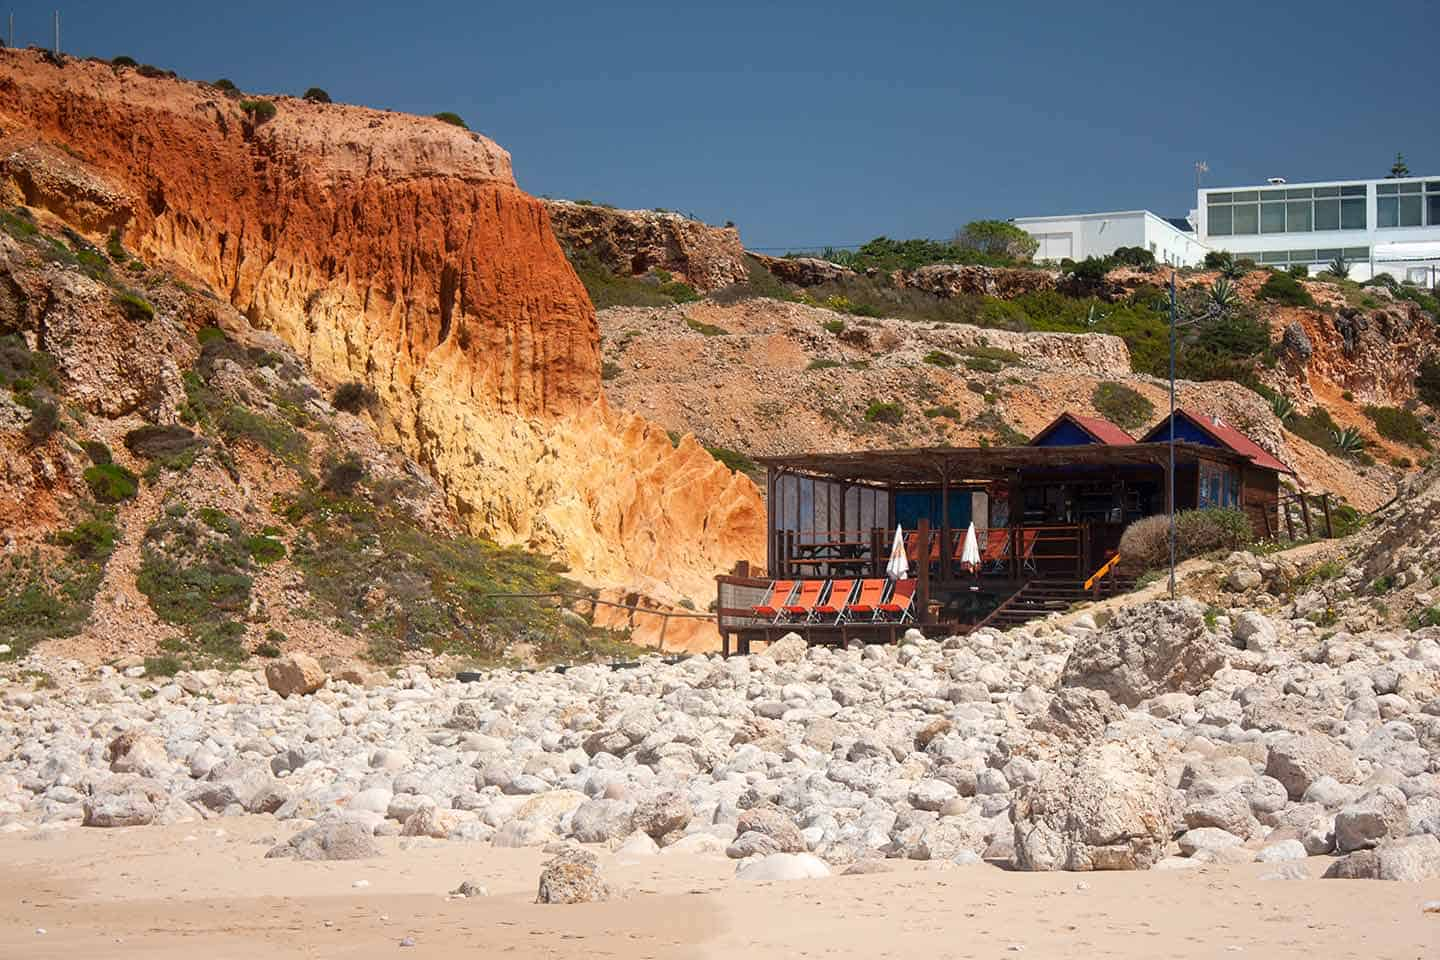 Accommodation Algarve image of beach cafe at Praia do Tonel Sagres